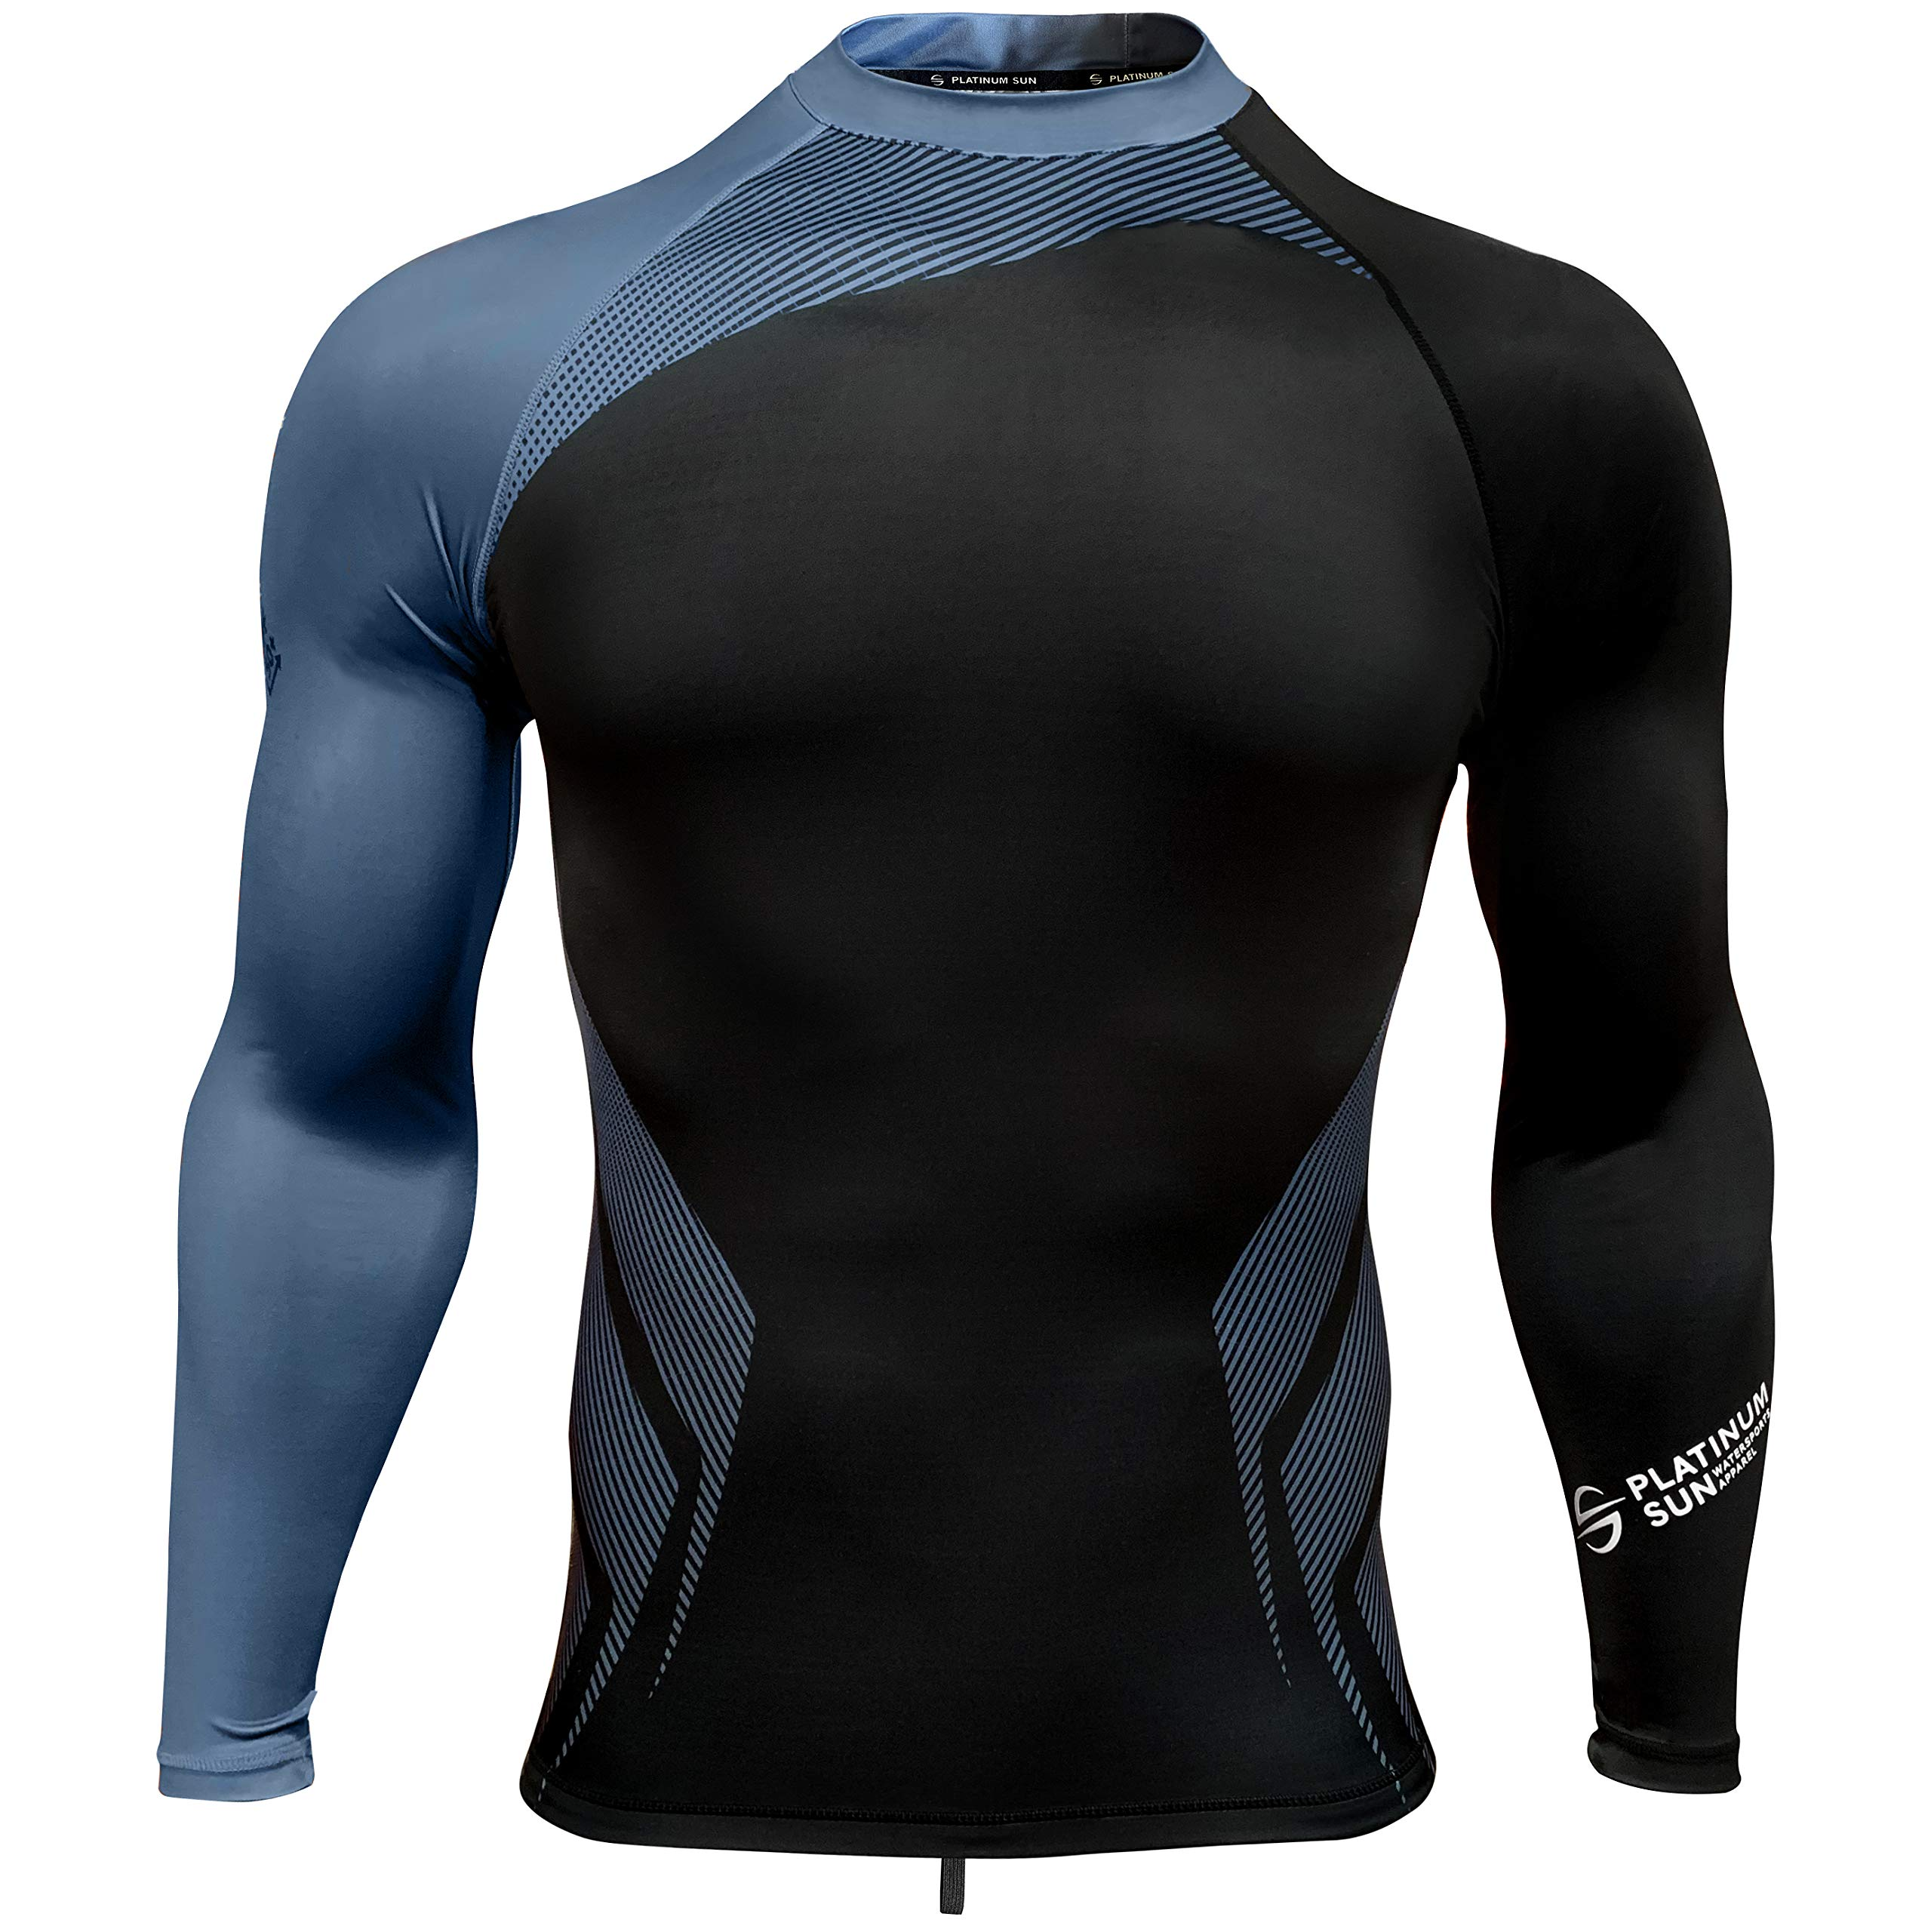 Mens Rash Guard Long Sleeve Surf Shirt Swimsuit - Quick Dry Sun Protection Clothing UPF 50+ (Cobalt, XL) by Platinum Sun